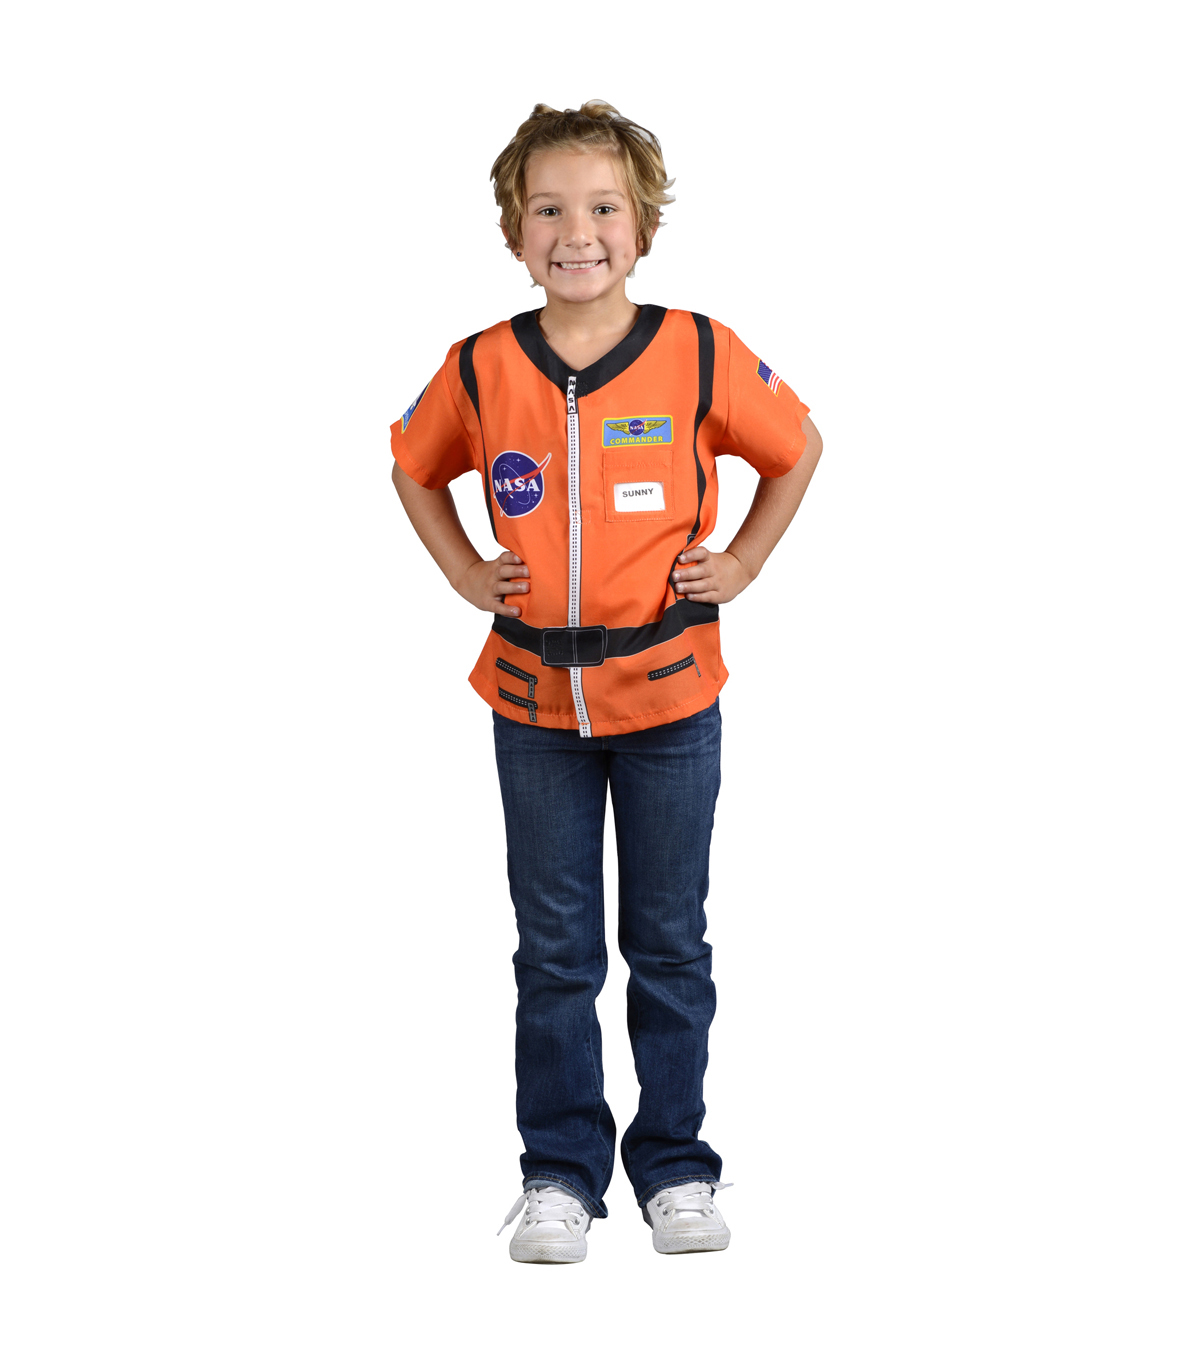 My 1st Career Gear Orange Astronaut Top, One Size Fits Most Ages 3-6